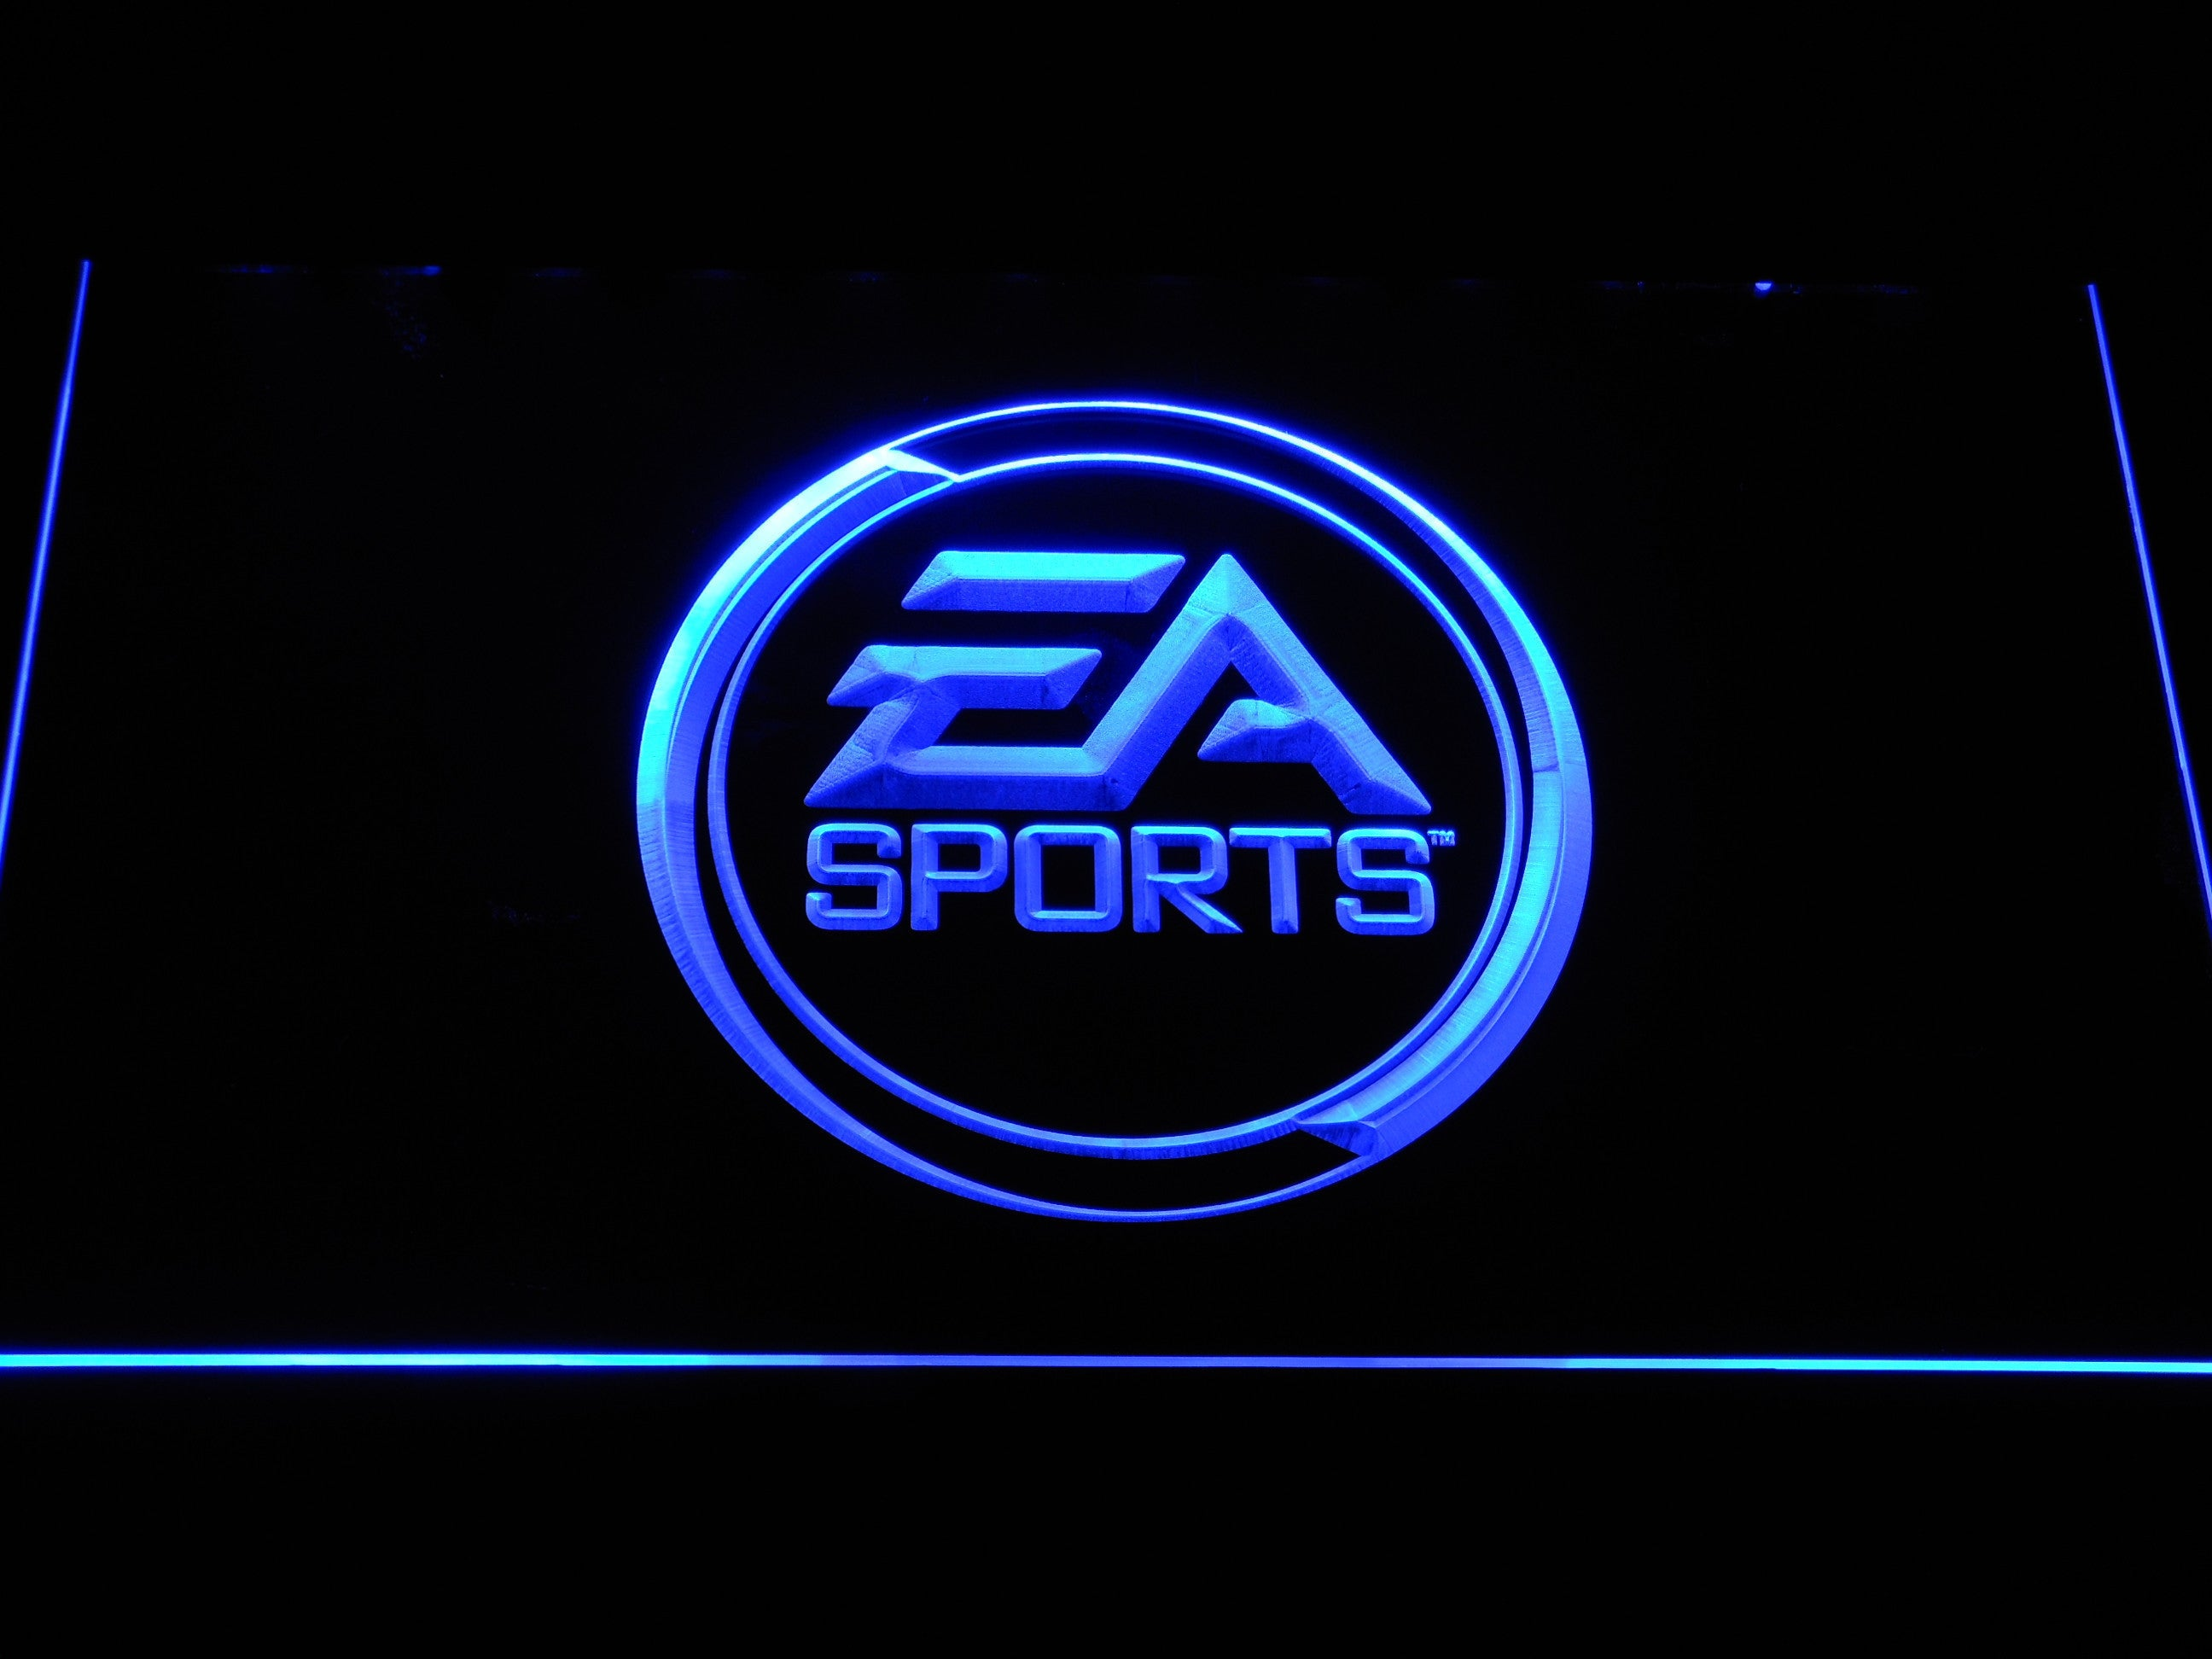 neon sports sign ea led signs safespecial games